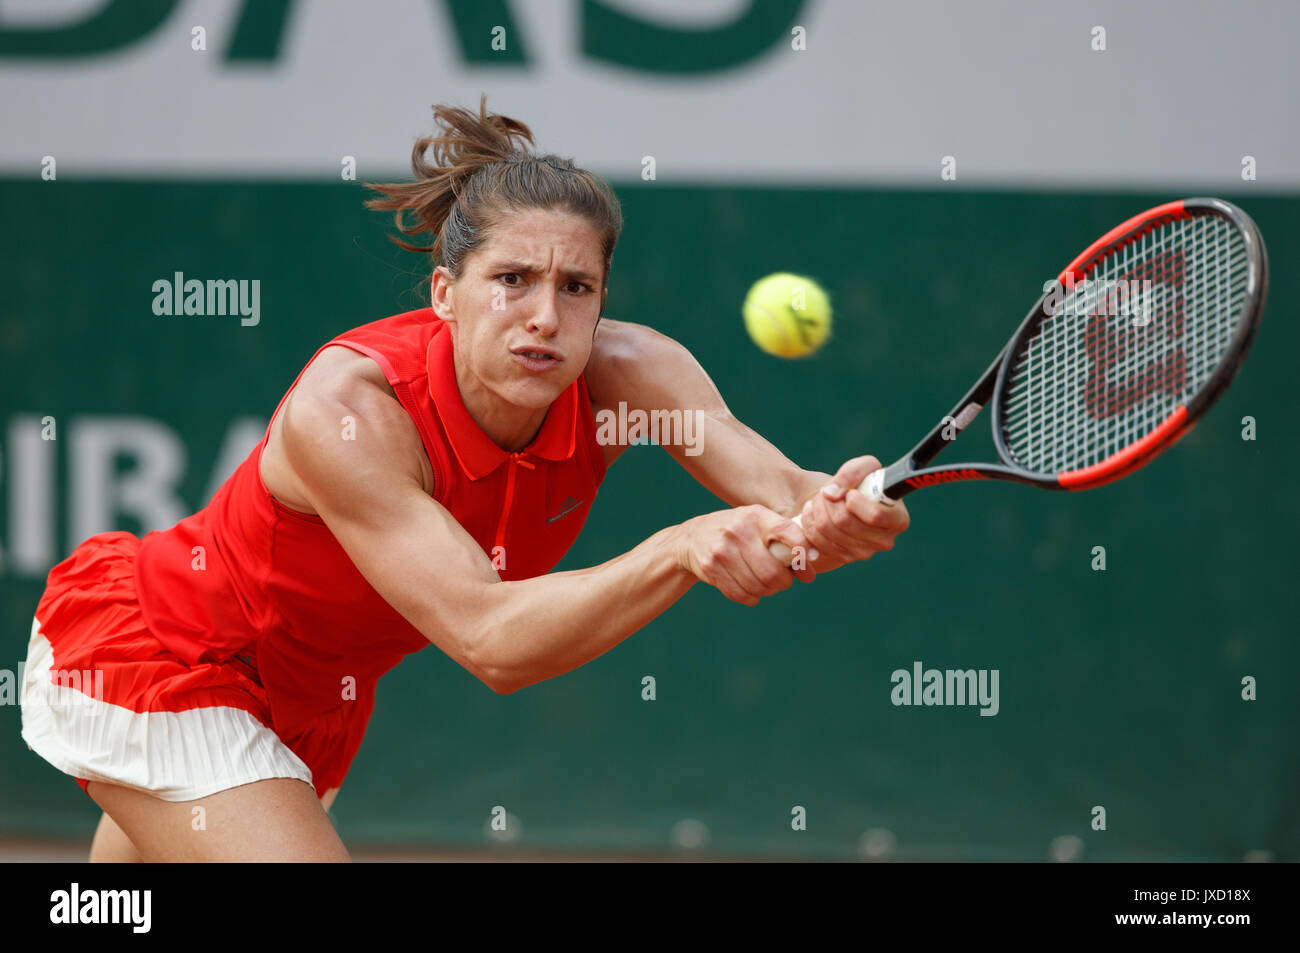 ANDREA PETKOVIC (GER) playing backhand return at the French Open. - Stock Image